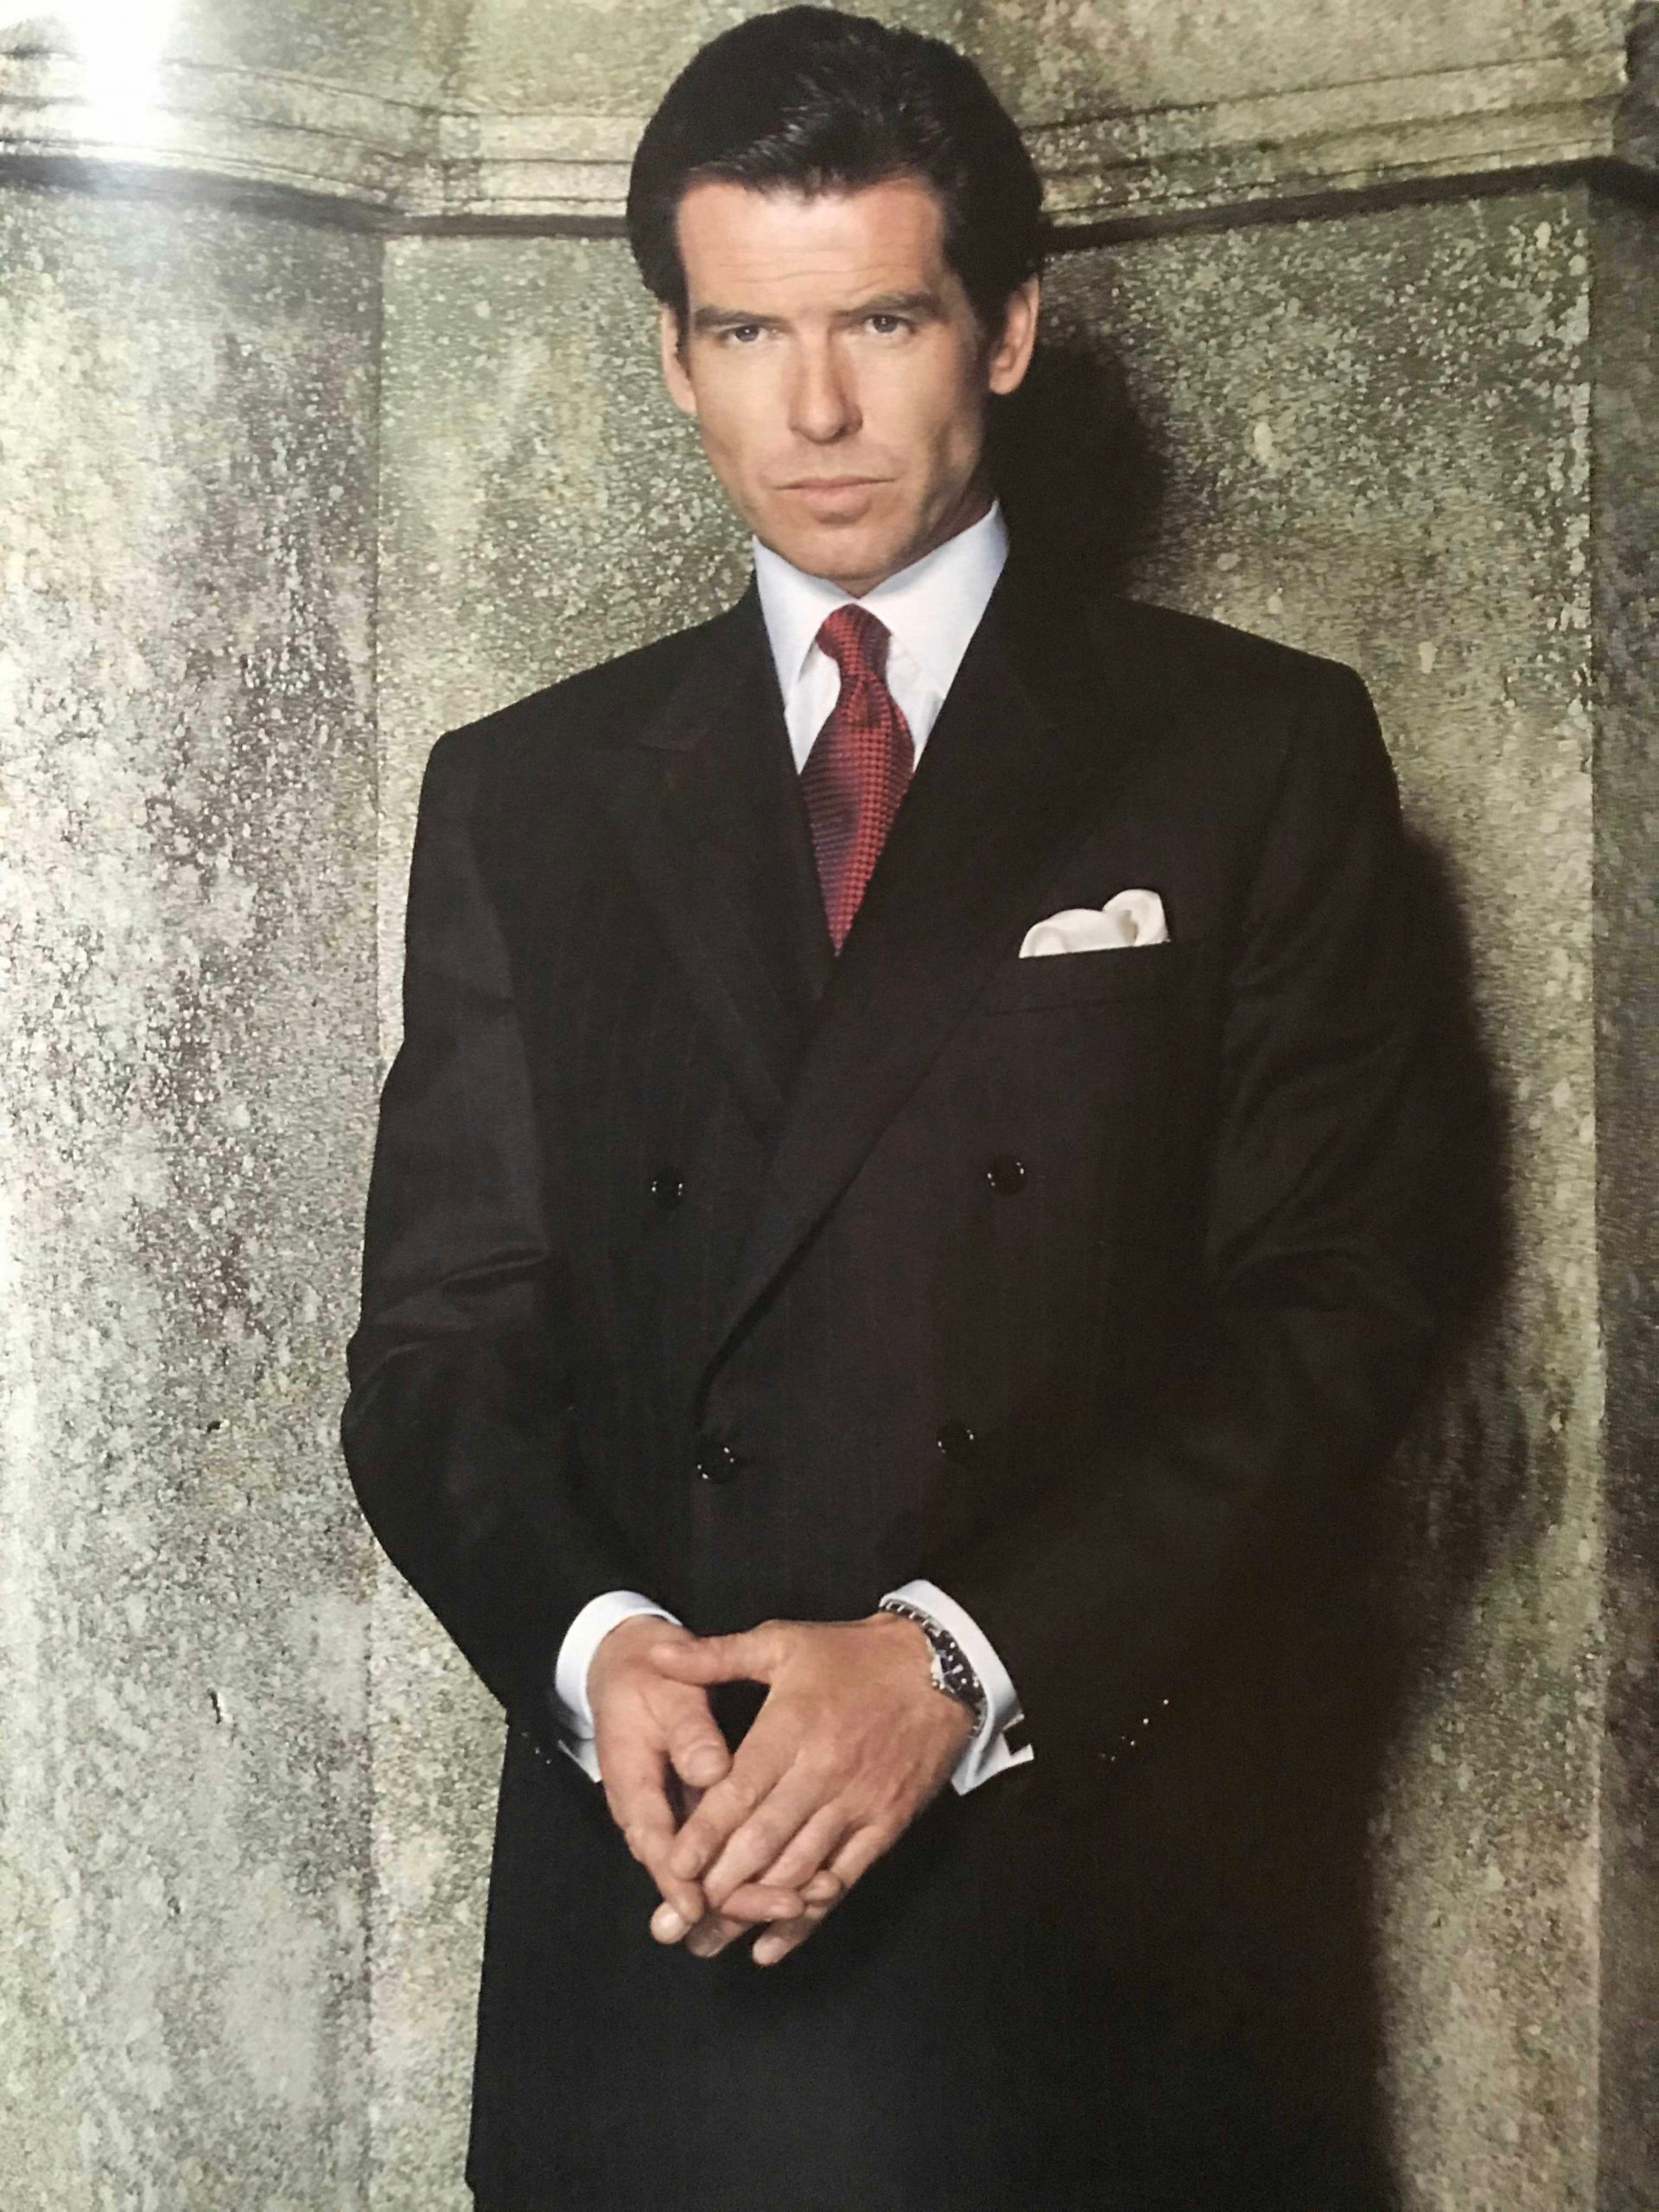 the Suits from Goldeneye